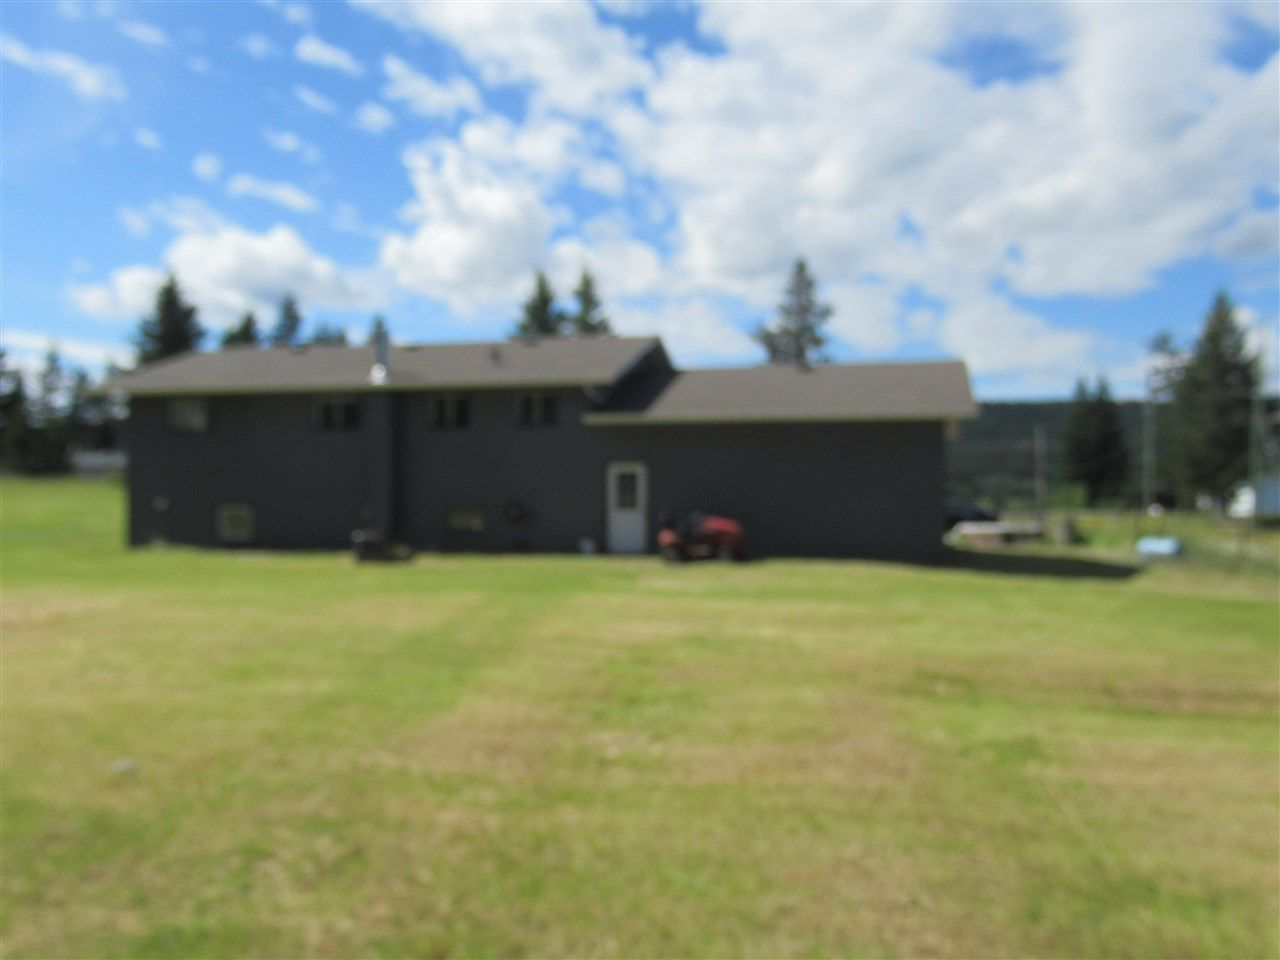 Photo 3: Photos: 3257 HINSCHE Road in Williams Lake: Williams Lake - Rural East House for sale (Williams Lake (Zone 27))  : MLS®# R2477340